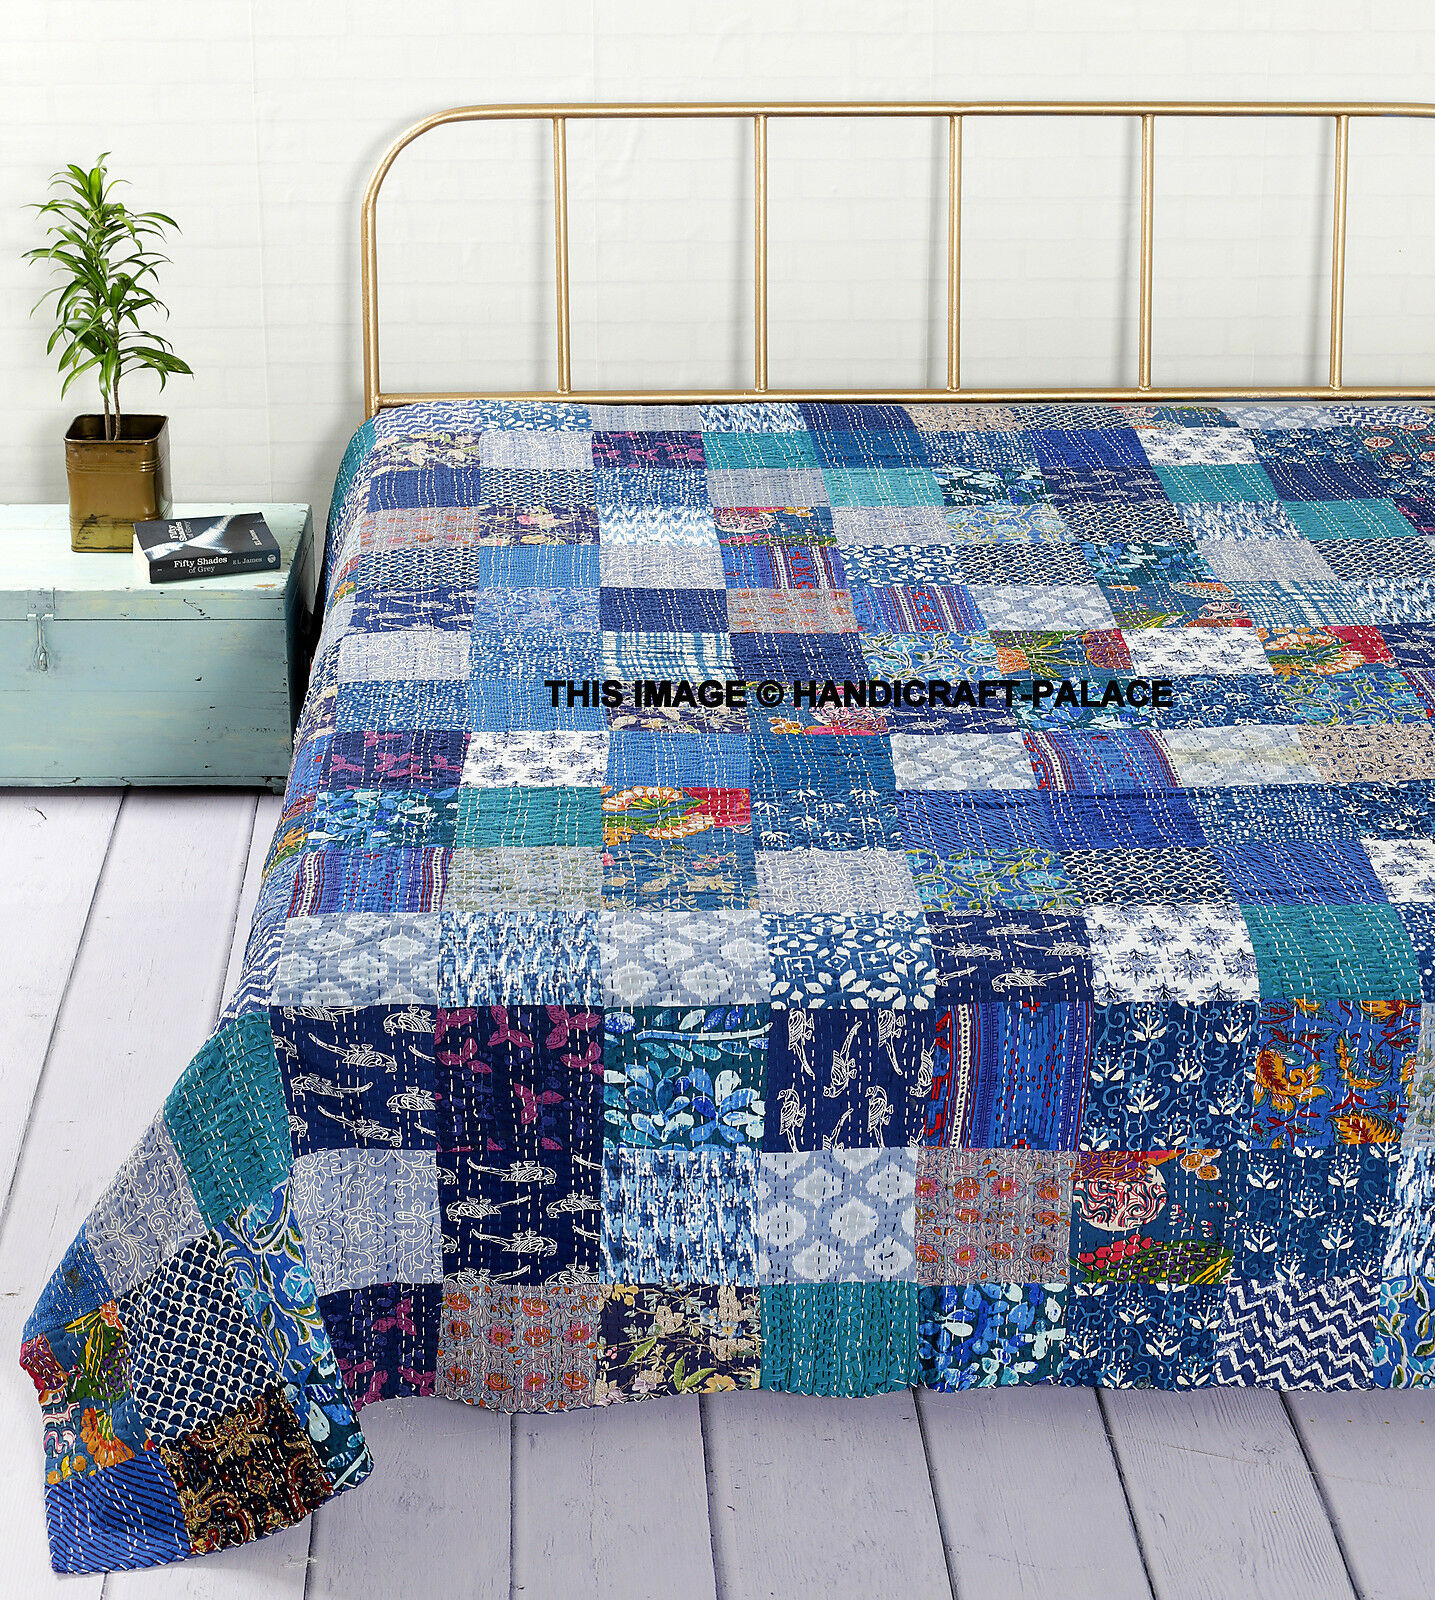 Indian Reversible Kantha Quilt Blau Patchwork Bedspread Bedding Blanket Throw